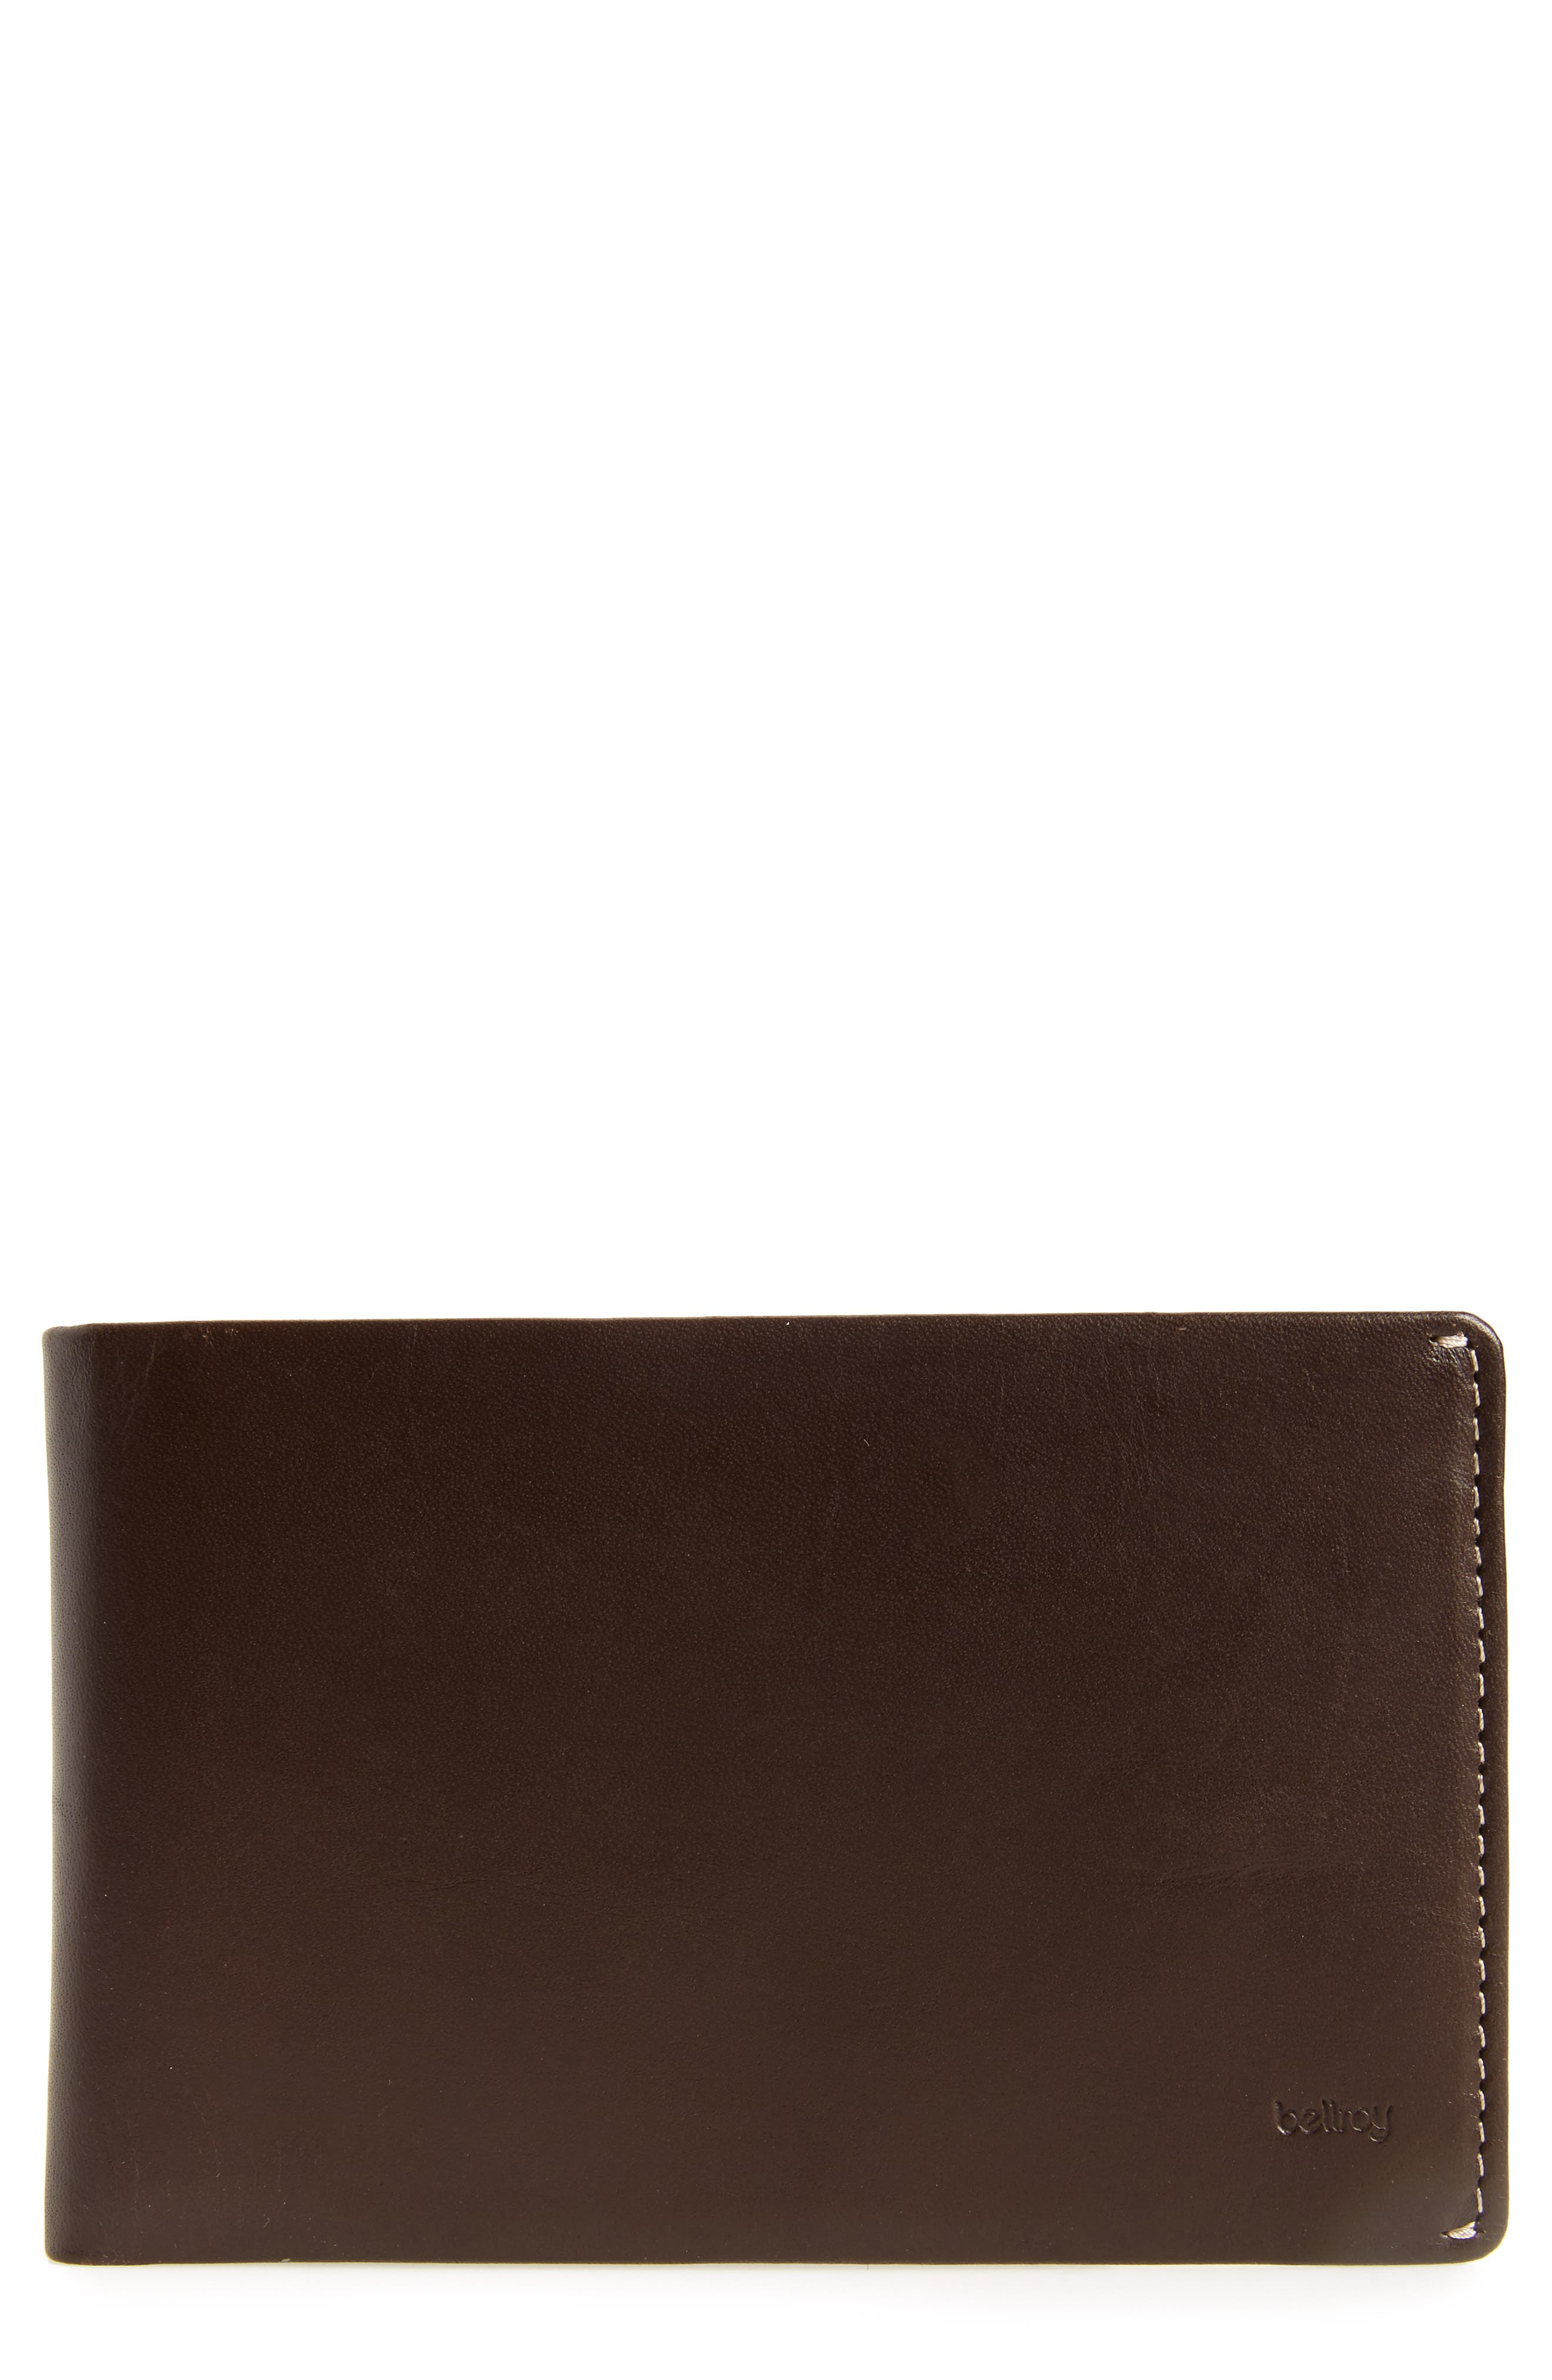 RFID Travel Wallet,                         Main,                         color, 201